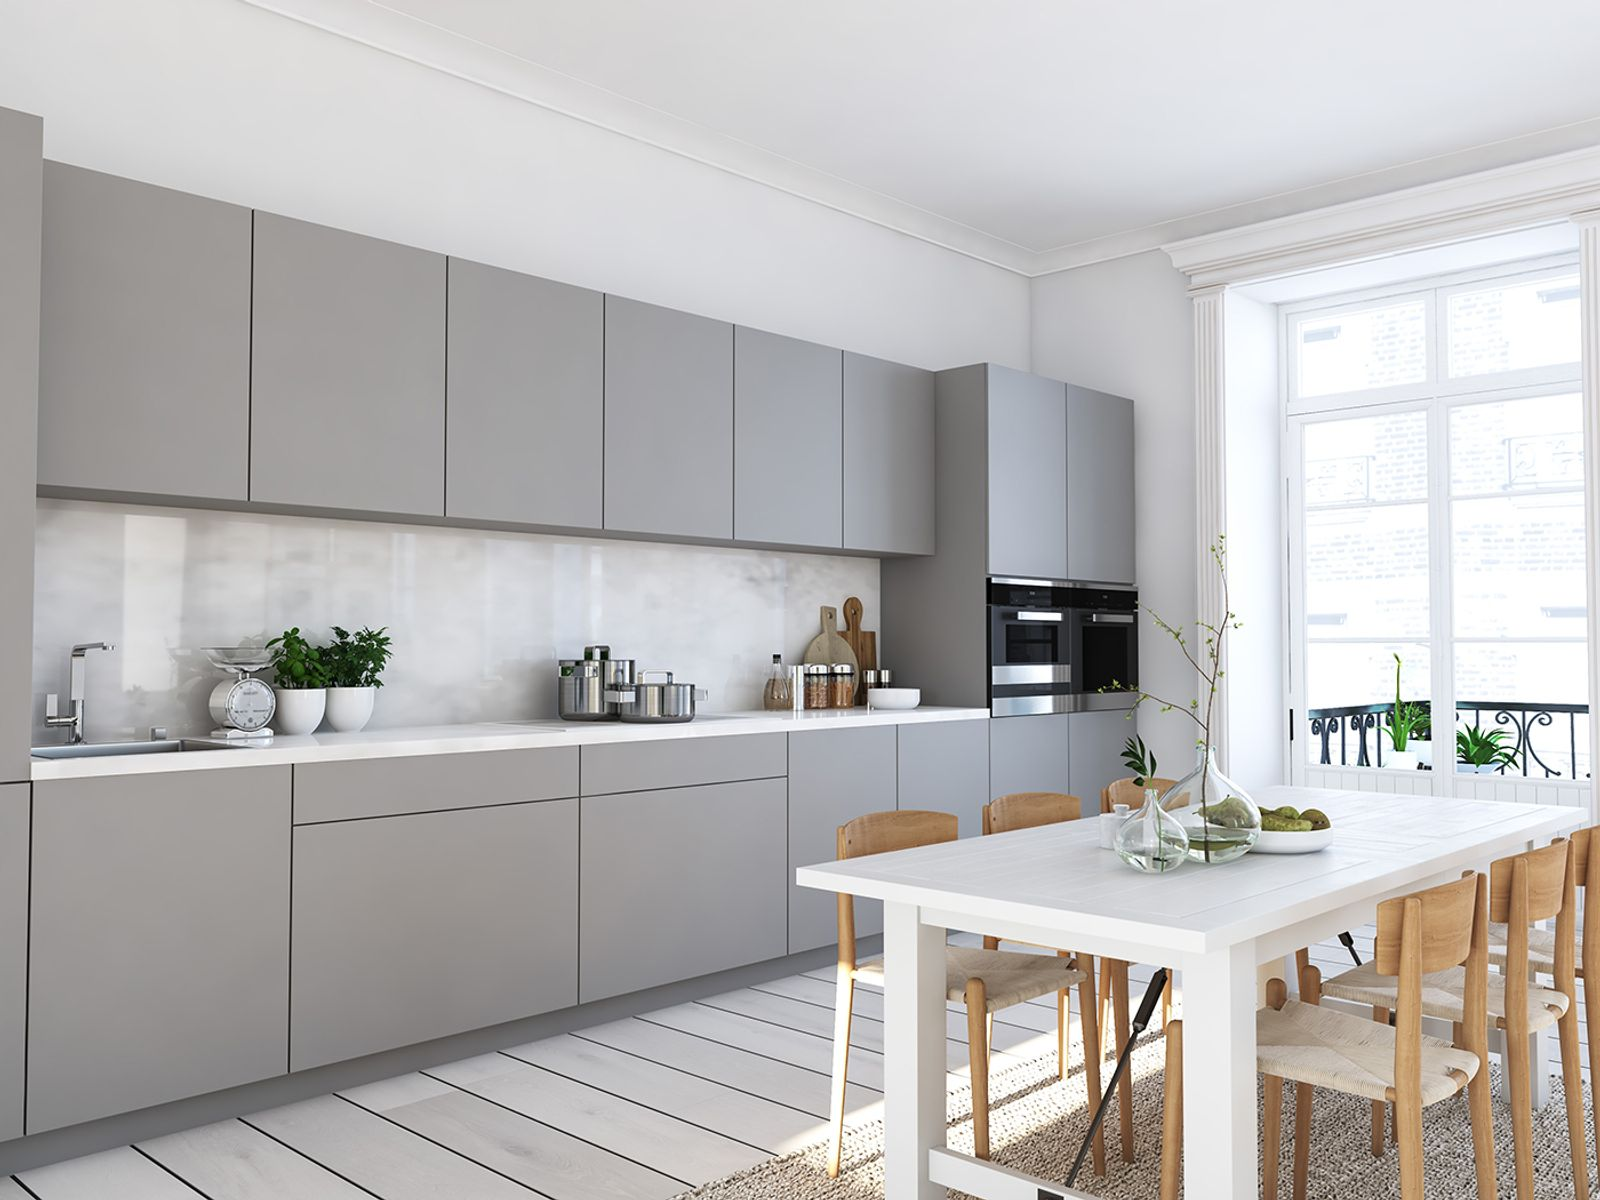 Kitchen renovation with architectural film